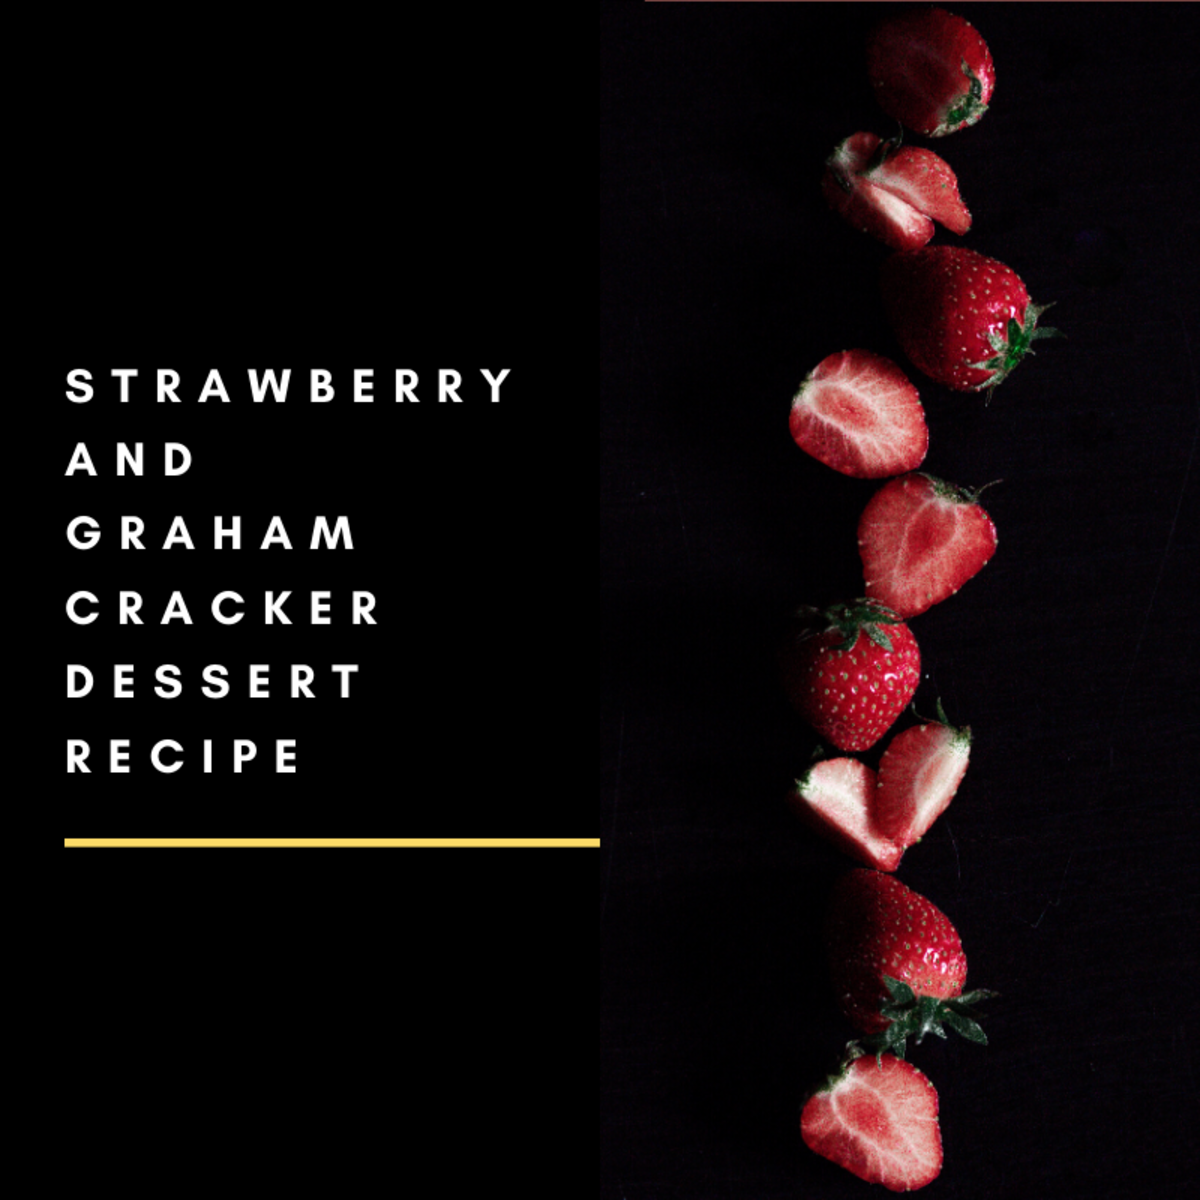 Delicious No-Bake Strawberry and Graham Cracker Dessert